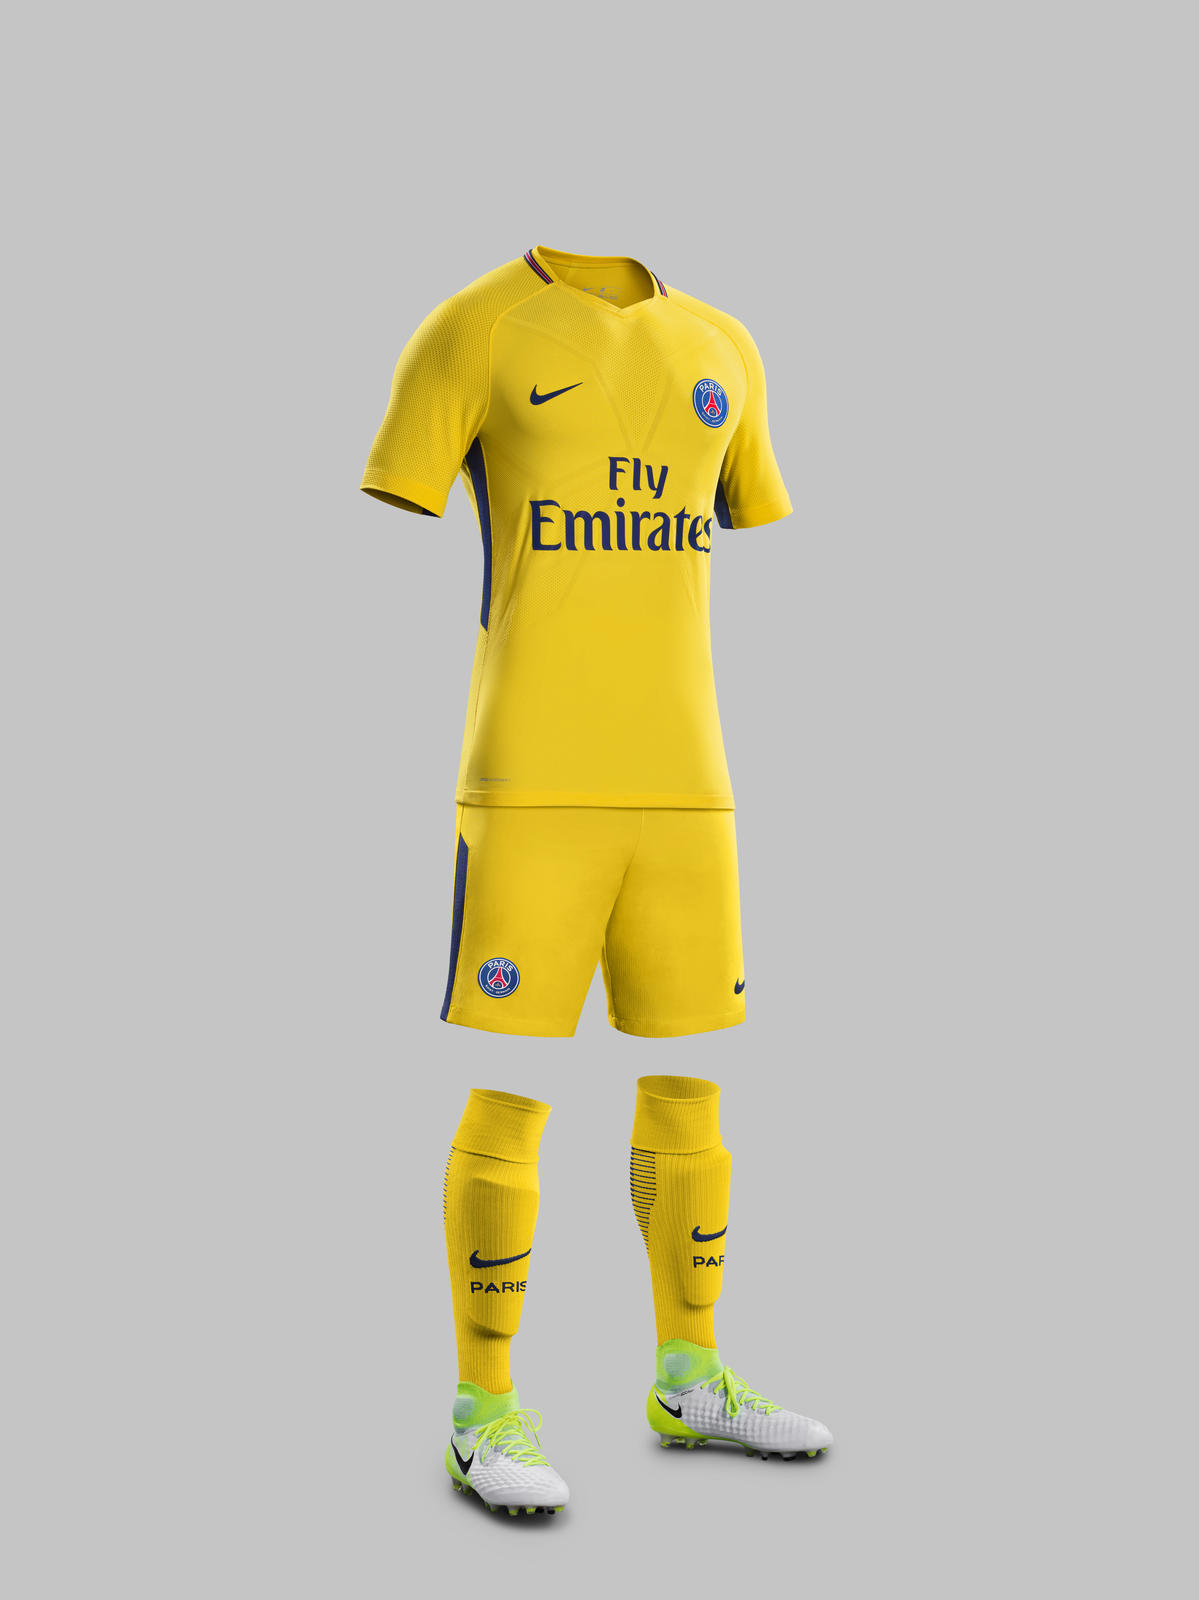 Paris Saint Germain Away Kit 2017-2018 - Nike News f2a187cd158f6